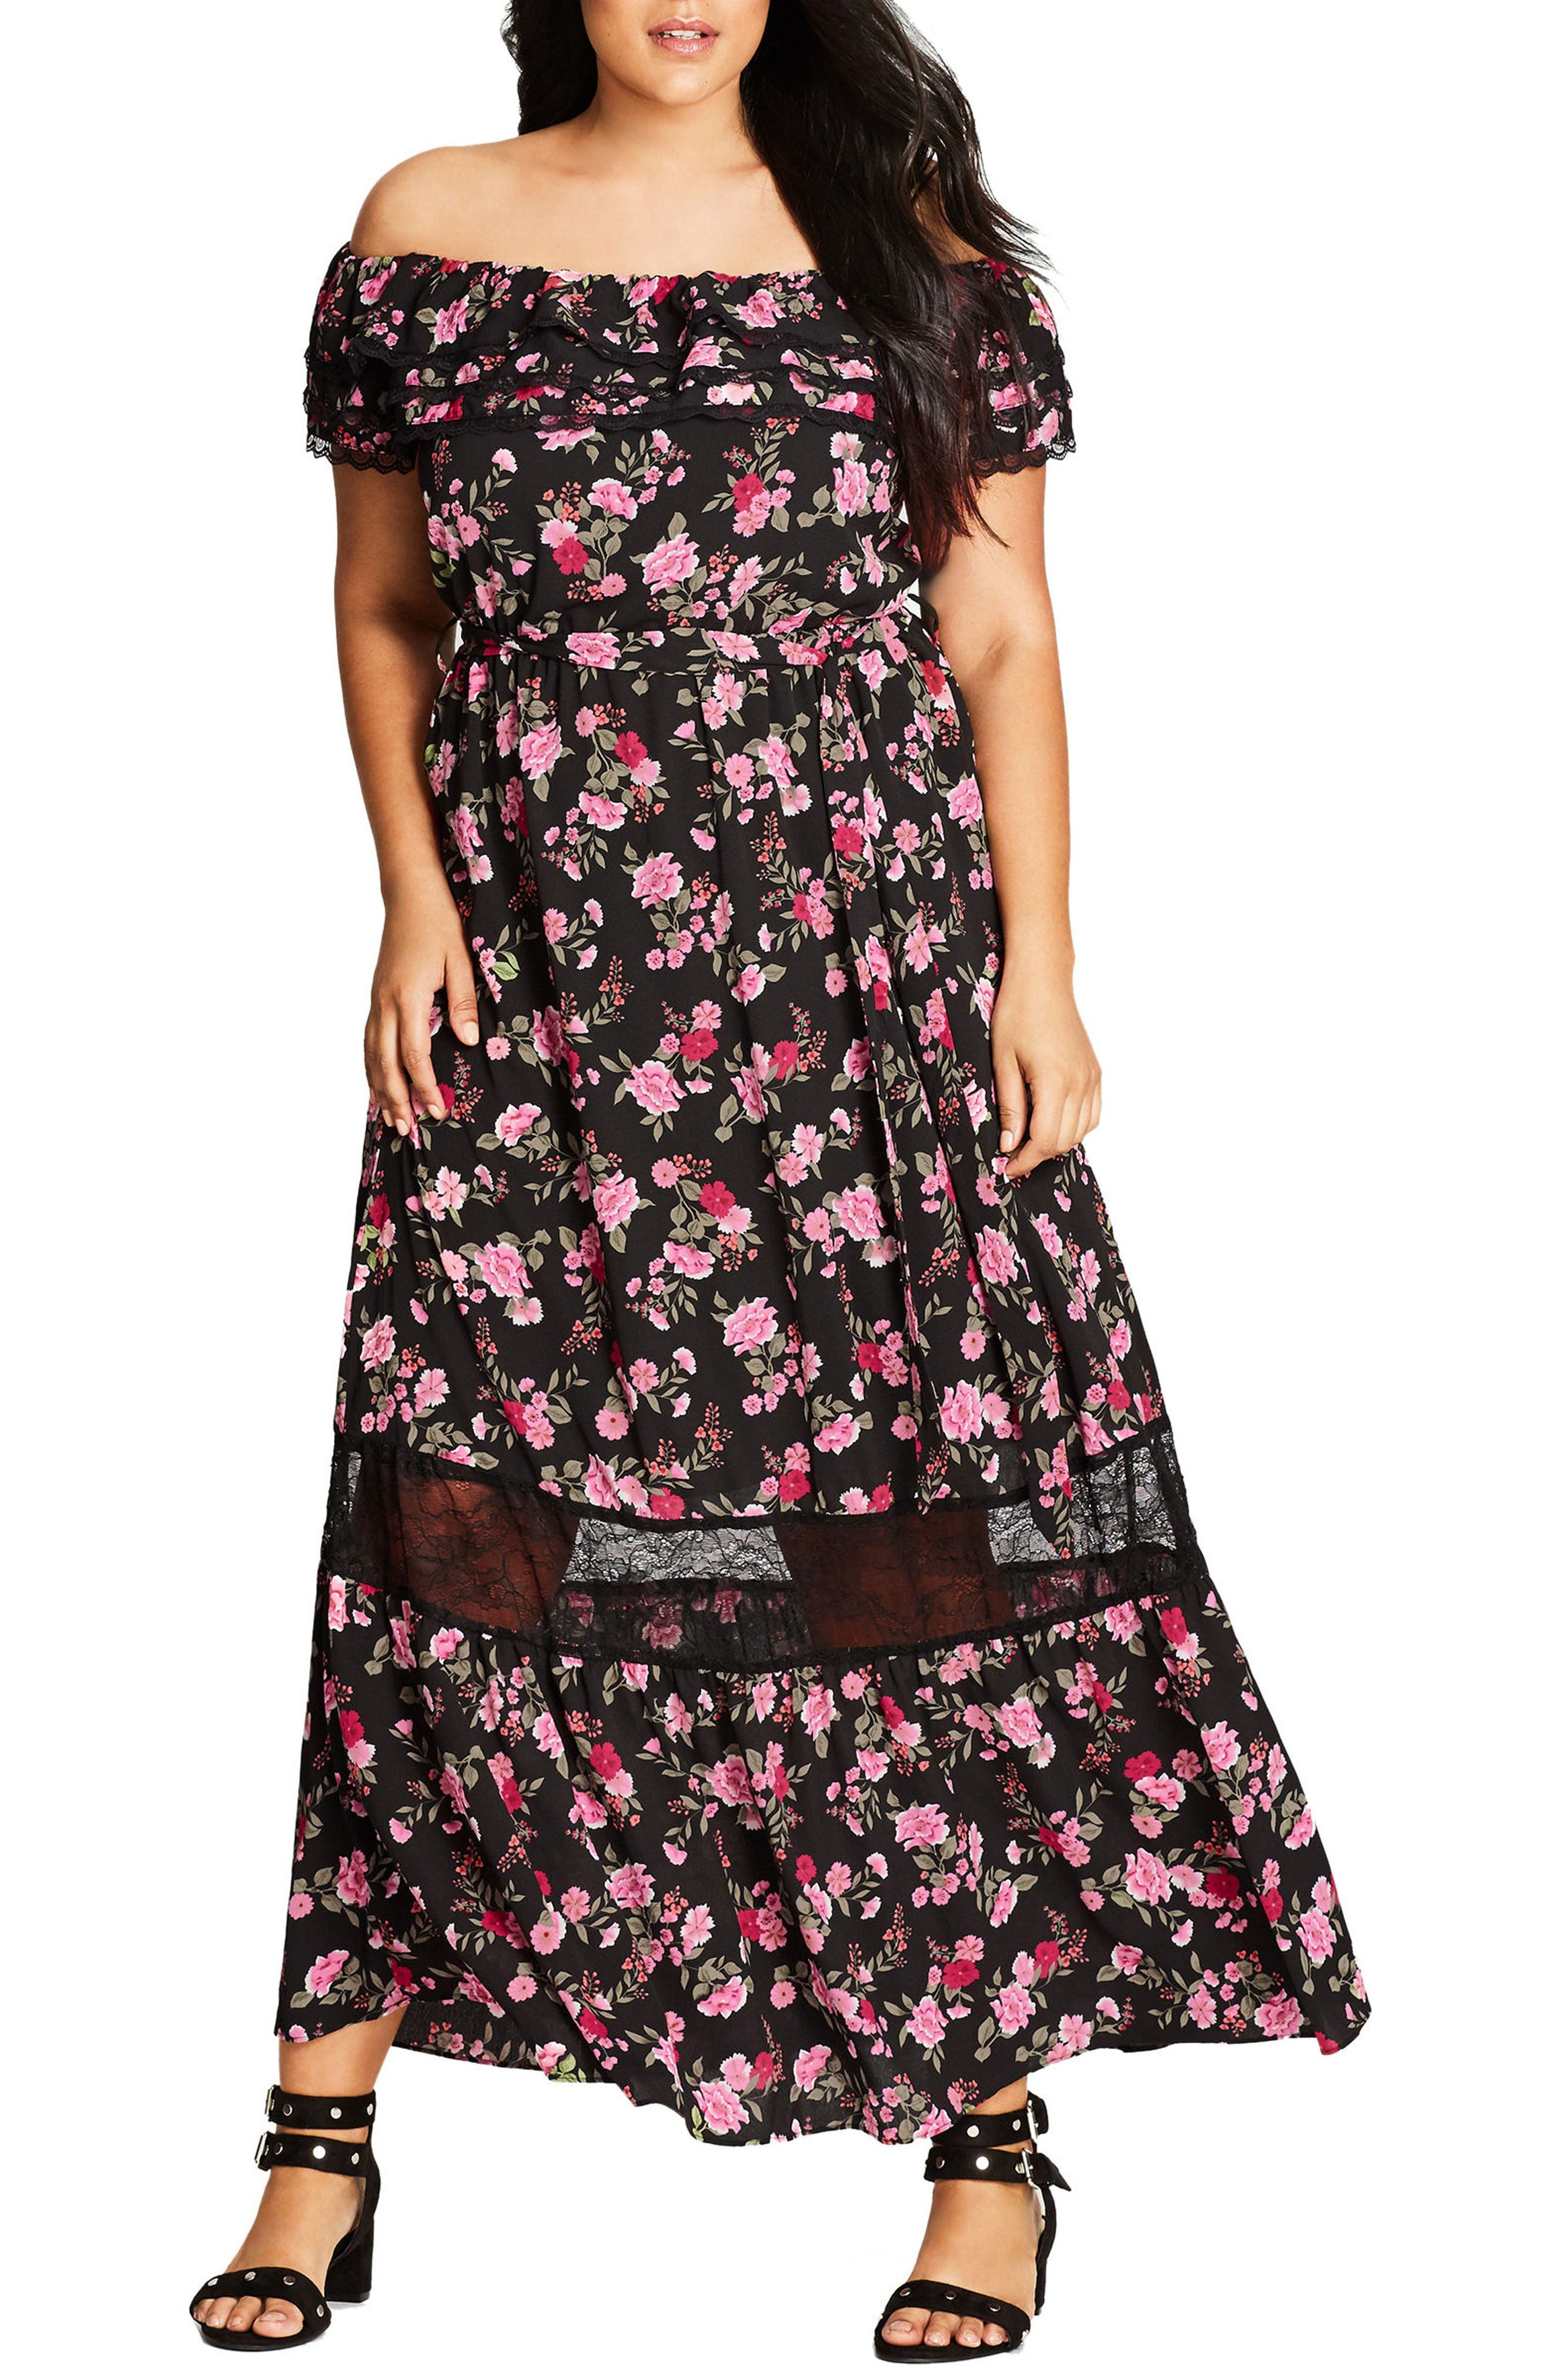 Free Love Floral Off the Shoulder Maxi Dress,                         Main,                         color, Fuchsia